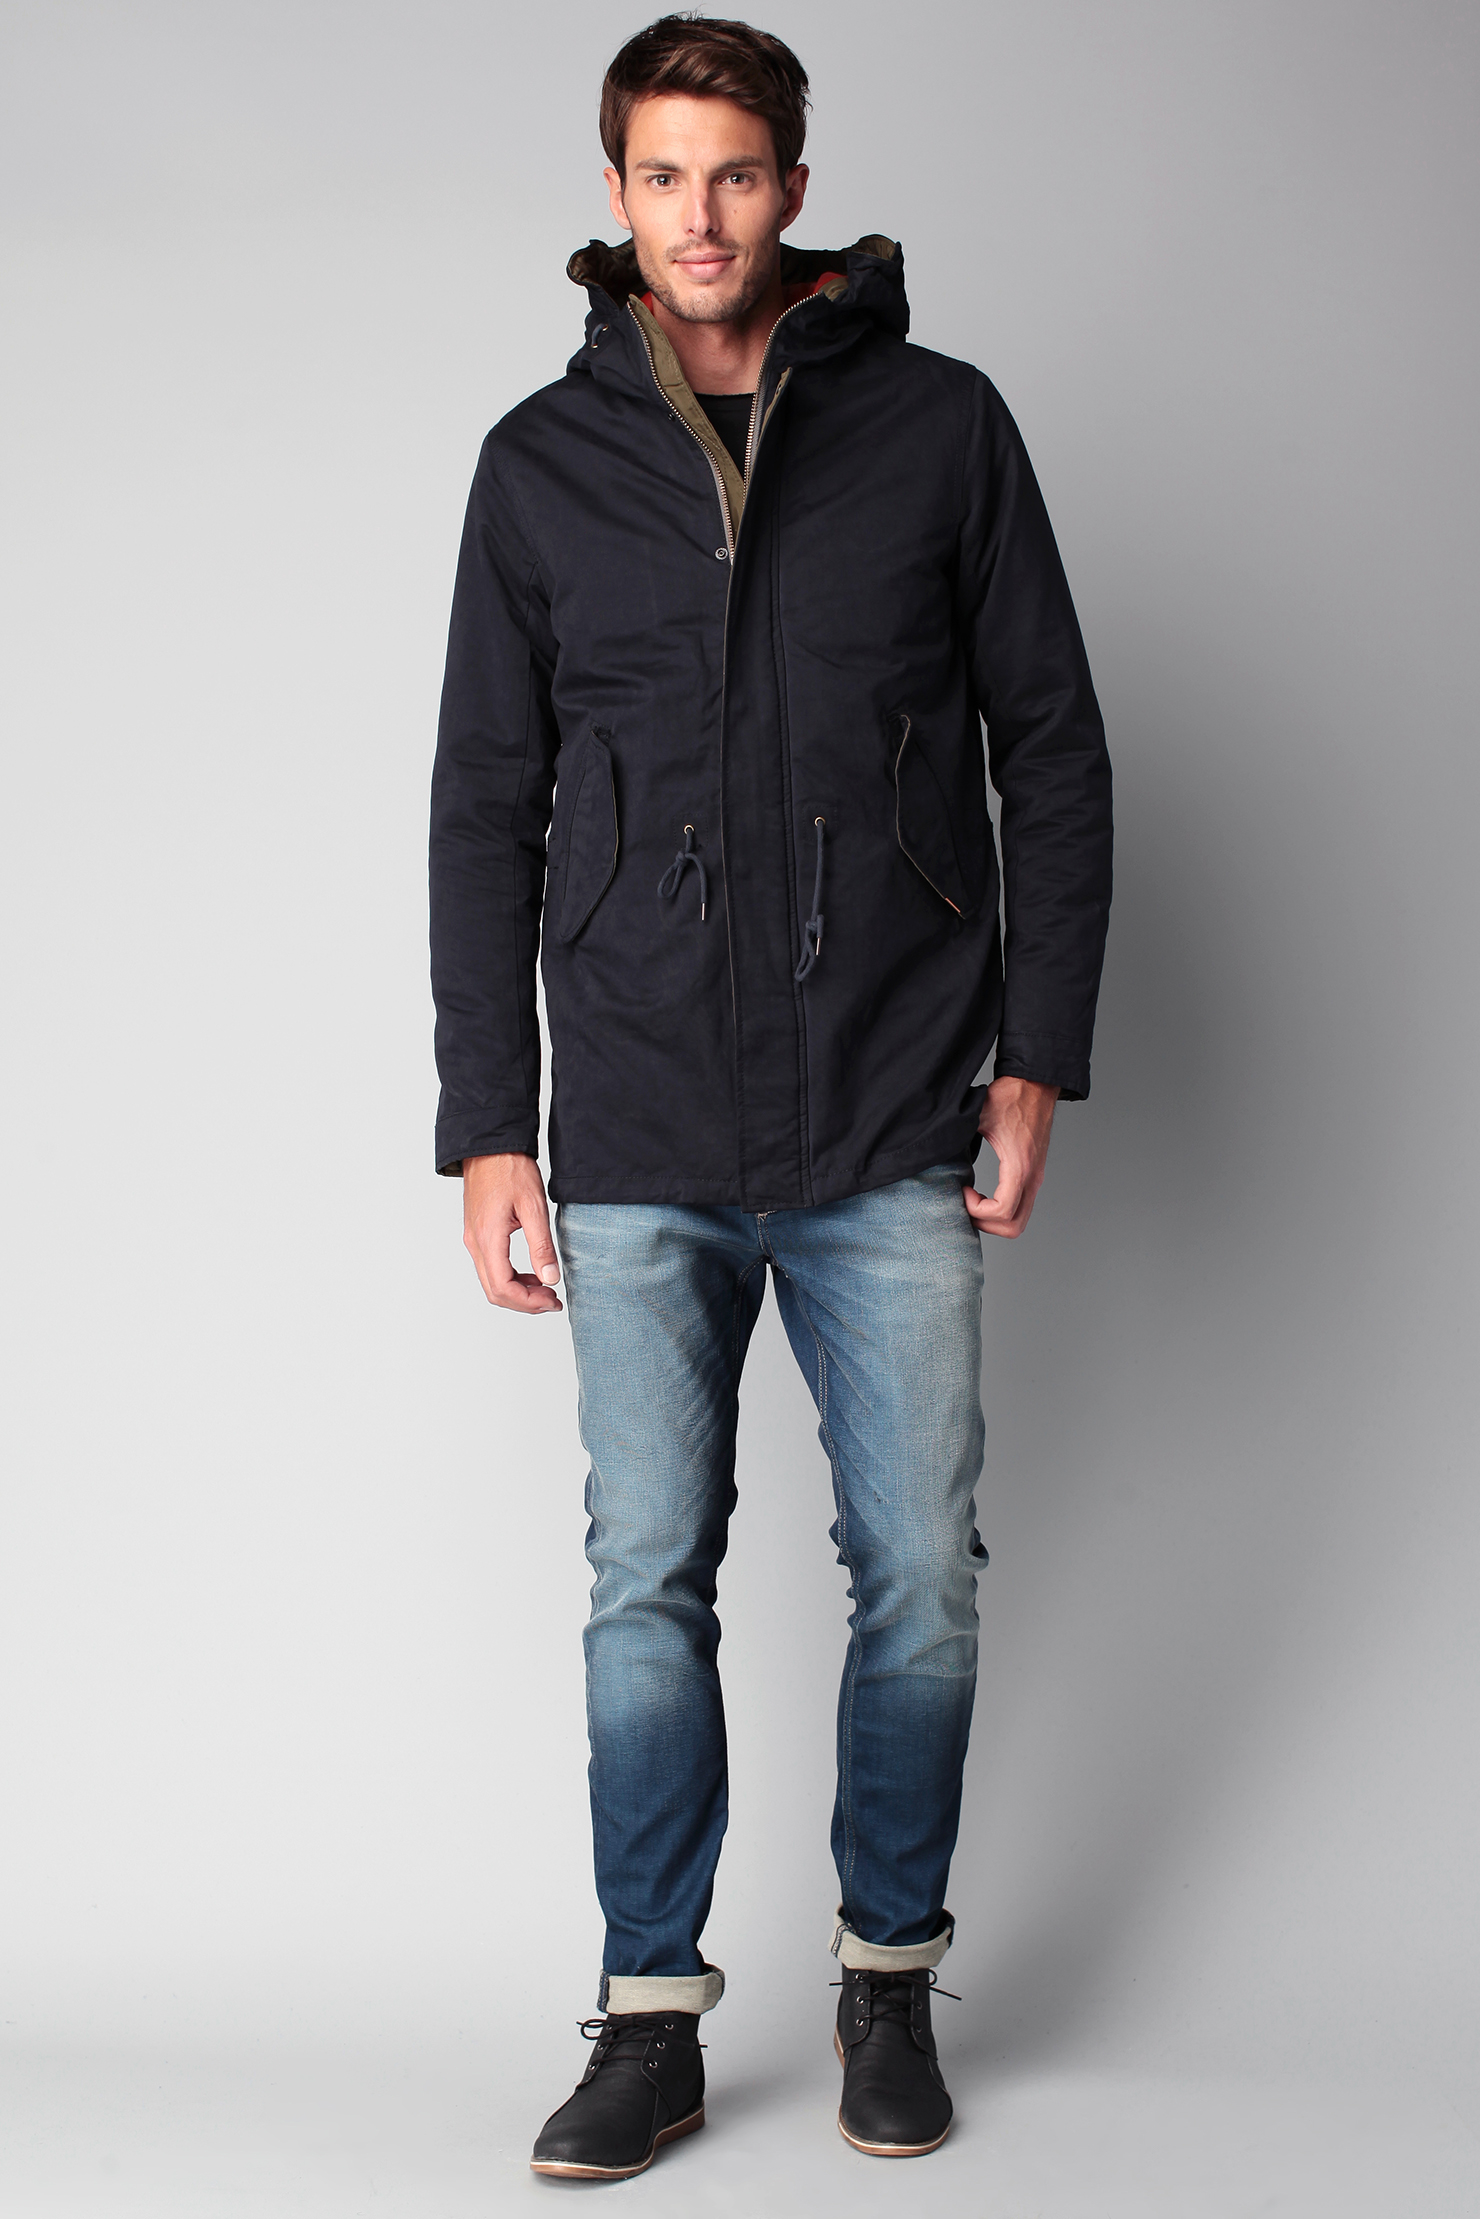 jack jones parka in blue for men lyst. Black Bedroom Furniture Sets. Home Design Ideas